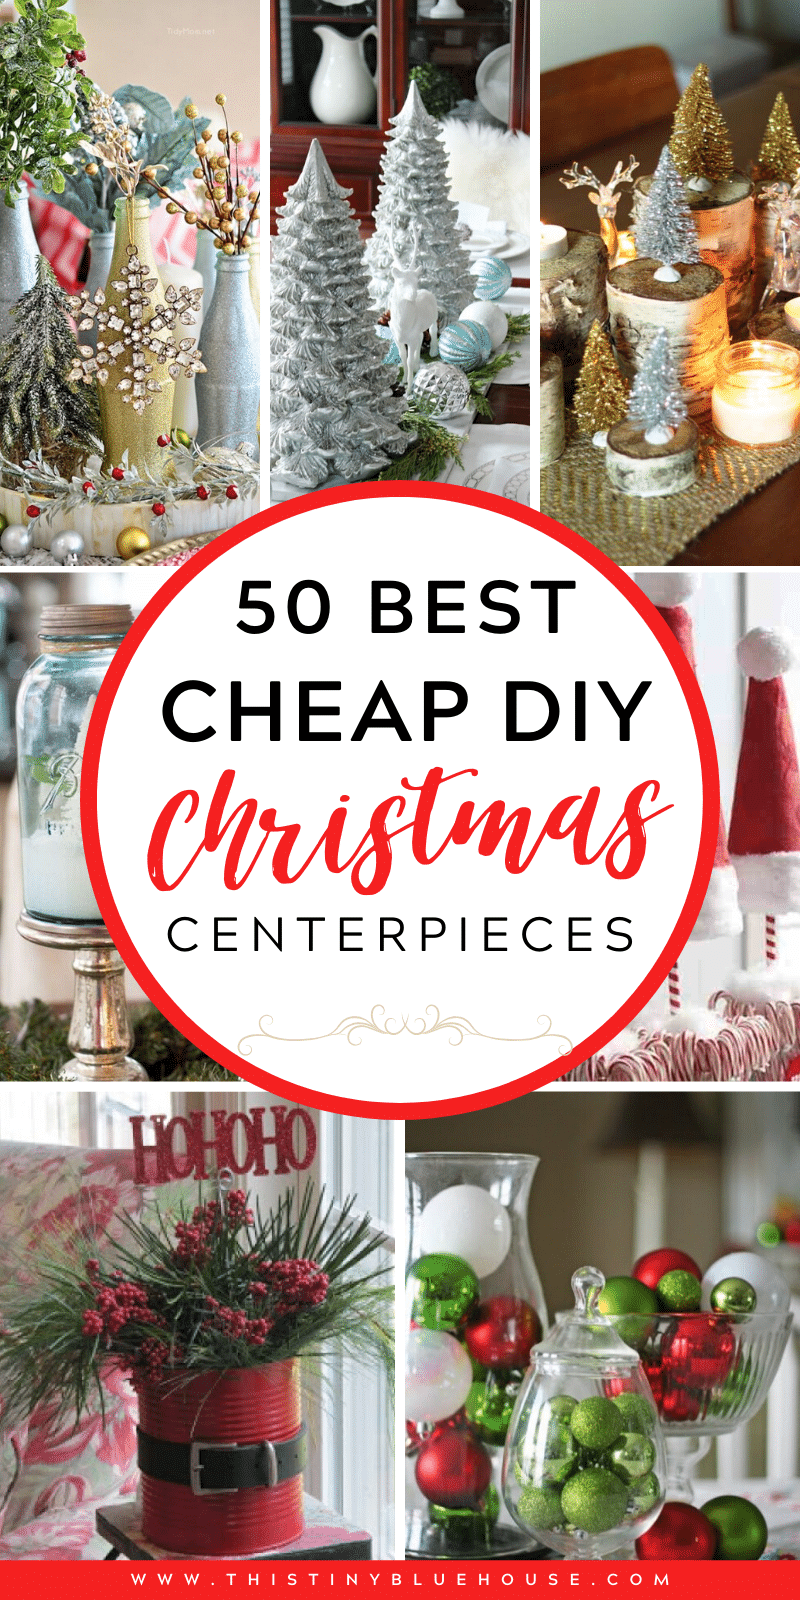 Glam up your mantel, coffee and dining table with these DIY Festive Christmas Centerpieces. From traditional to rustic there's a centerpiece to fit every decor style. #ChristmasCenterpiece #DIYChristmasCenterpiece #ChristmasCenterpieceDollarStore #DIYChristmasCenterpieceRustic #DIYChristmasCenterpieceSimple #DIYChristmasCenterpieceEasy